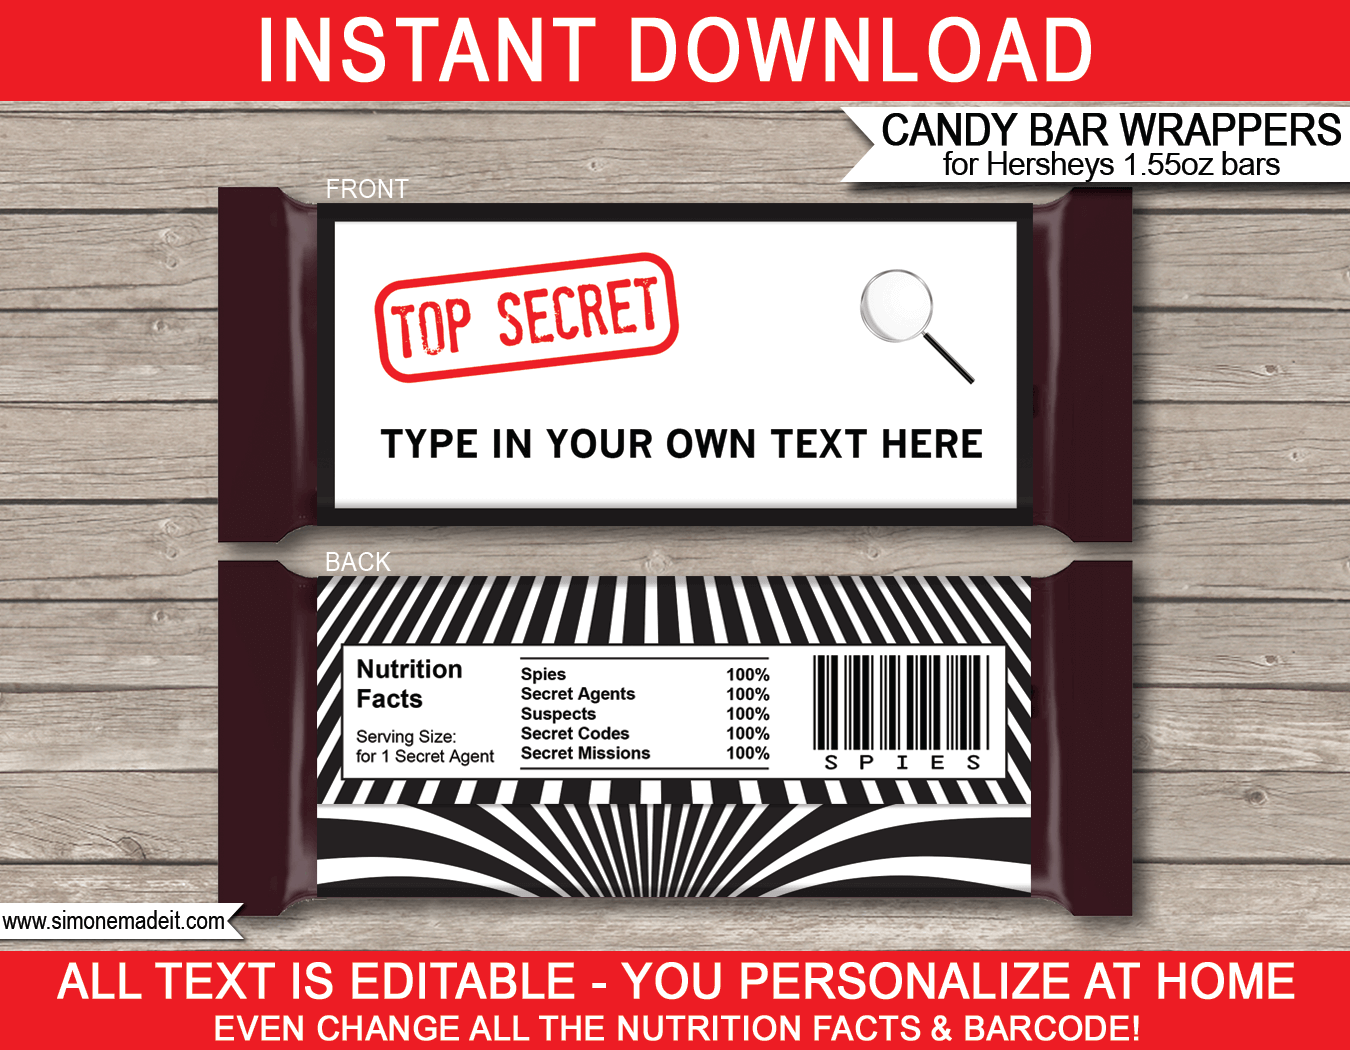 Spy or Secret Agent Hershey Candy Bar Wrappers | Birthday Party Favors | Personalized Candy Bars | Editable Text Template | INSTANT DOWNLOAD $3.00 via simonemadeit.com